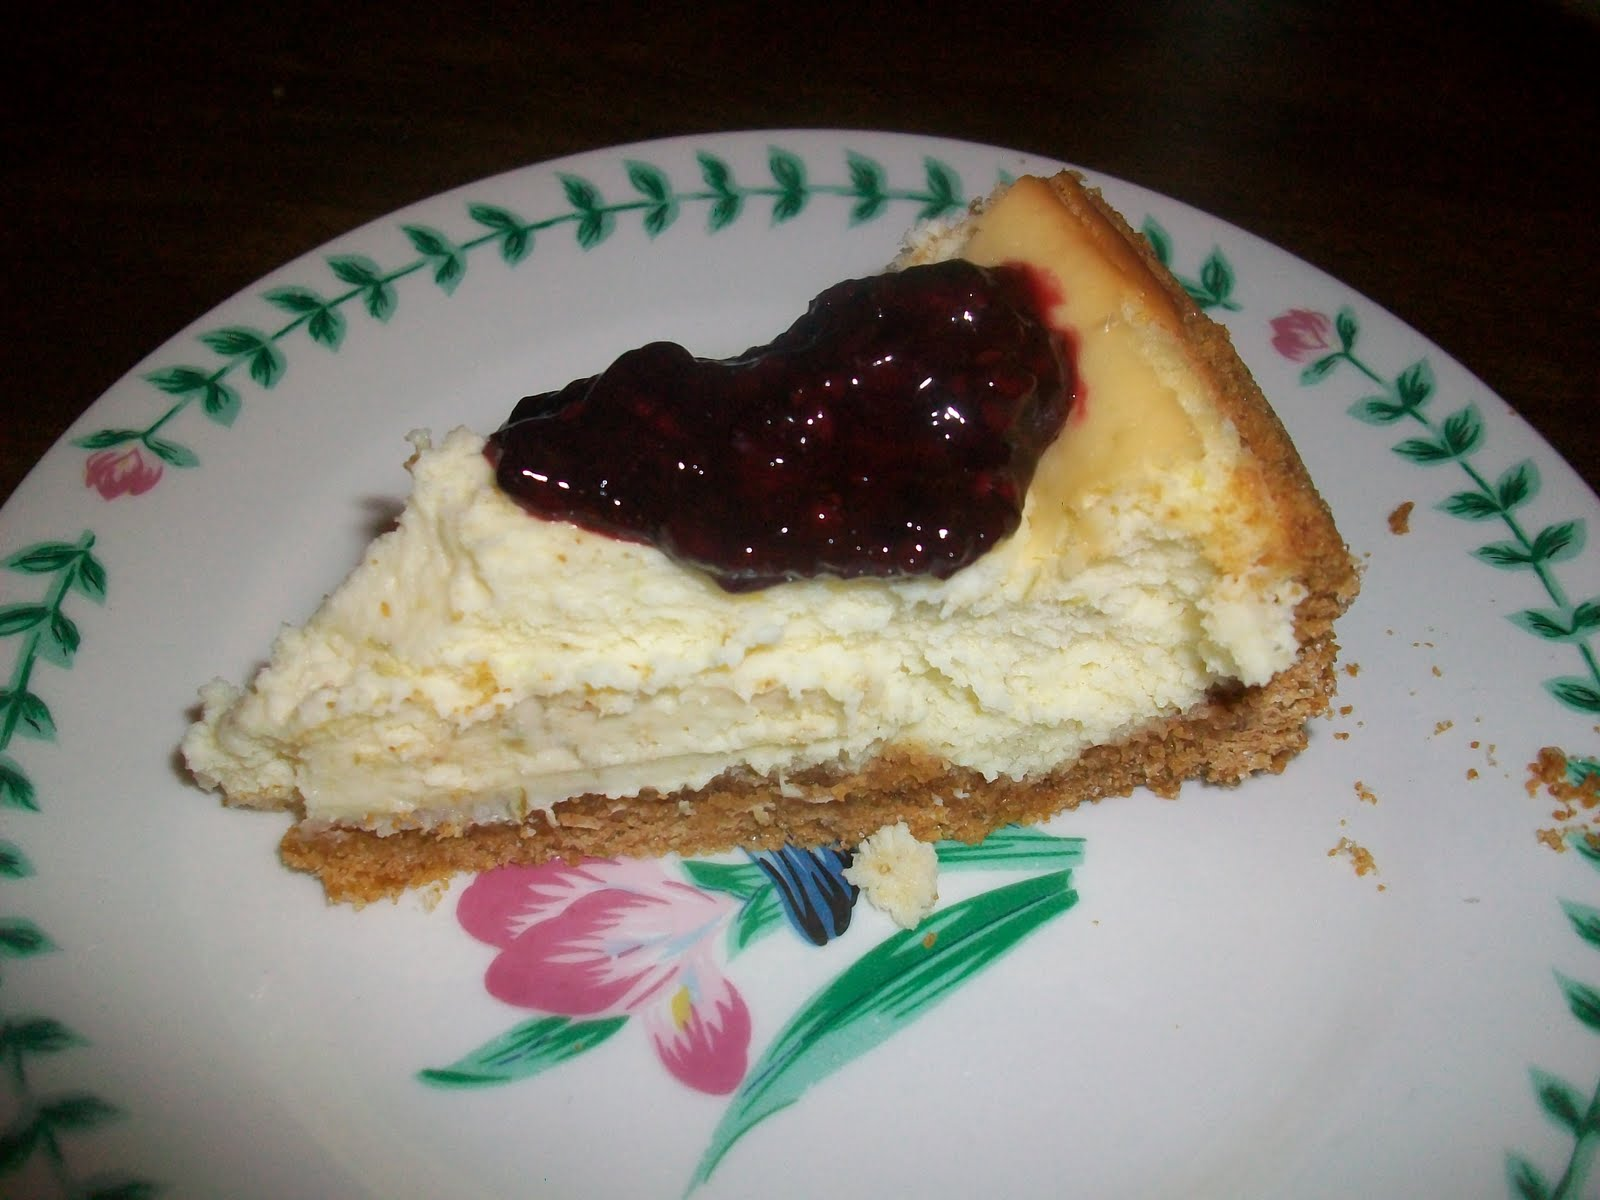 Double the Deliciousness: Lime Cheesecake with Blackberry Sauce